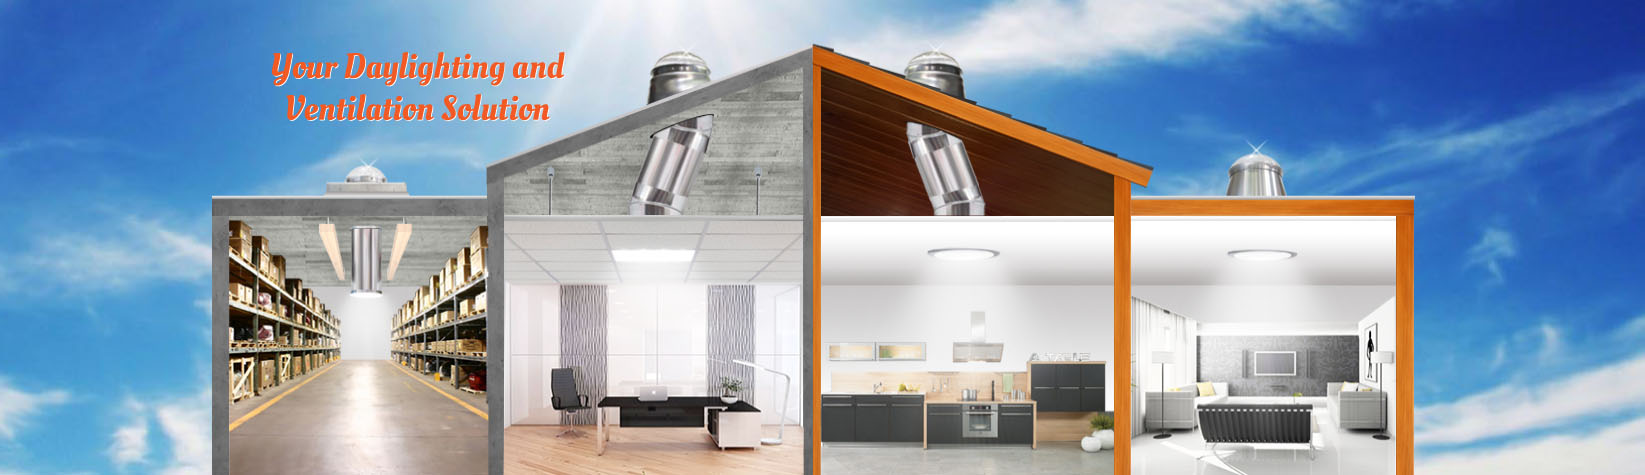 Commercial Tubular Skylights